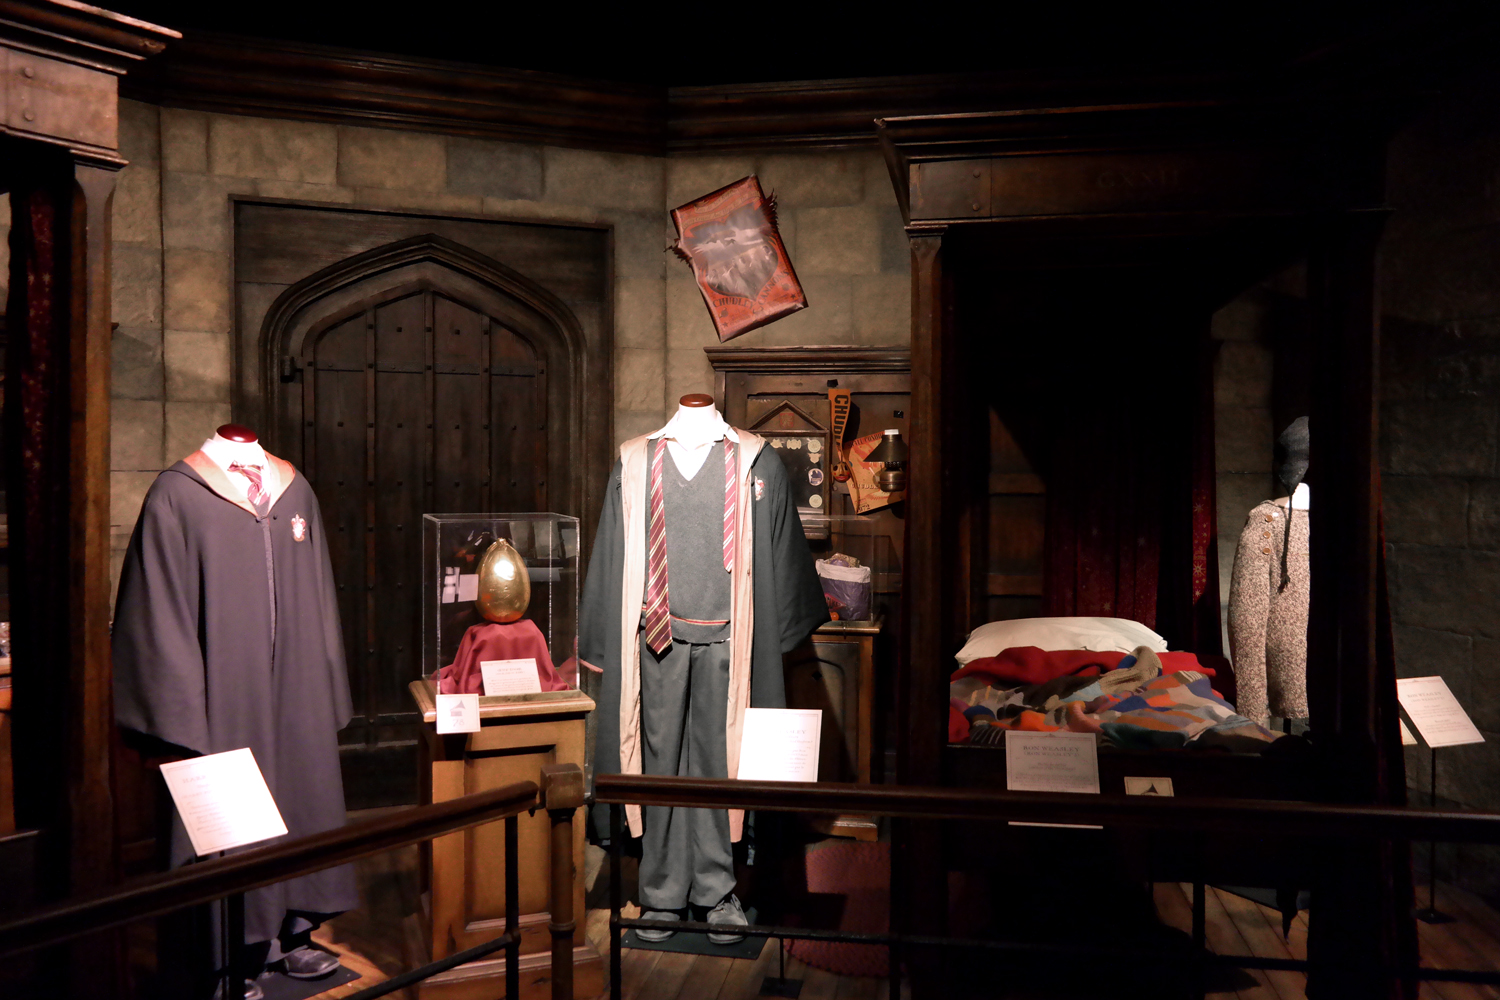 D Cinema Exhibition : L expo harry potter dévoile ses secrets à la cité du